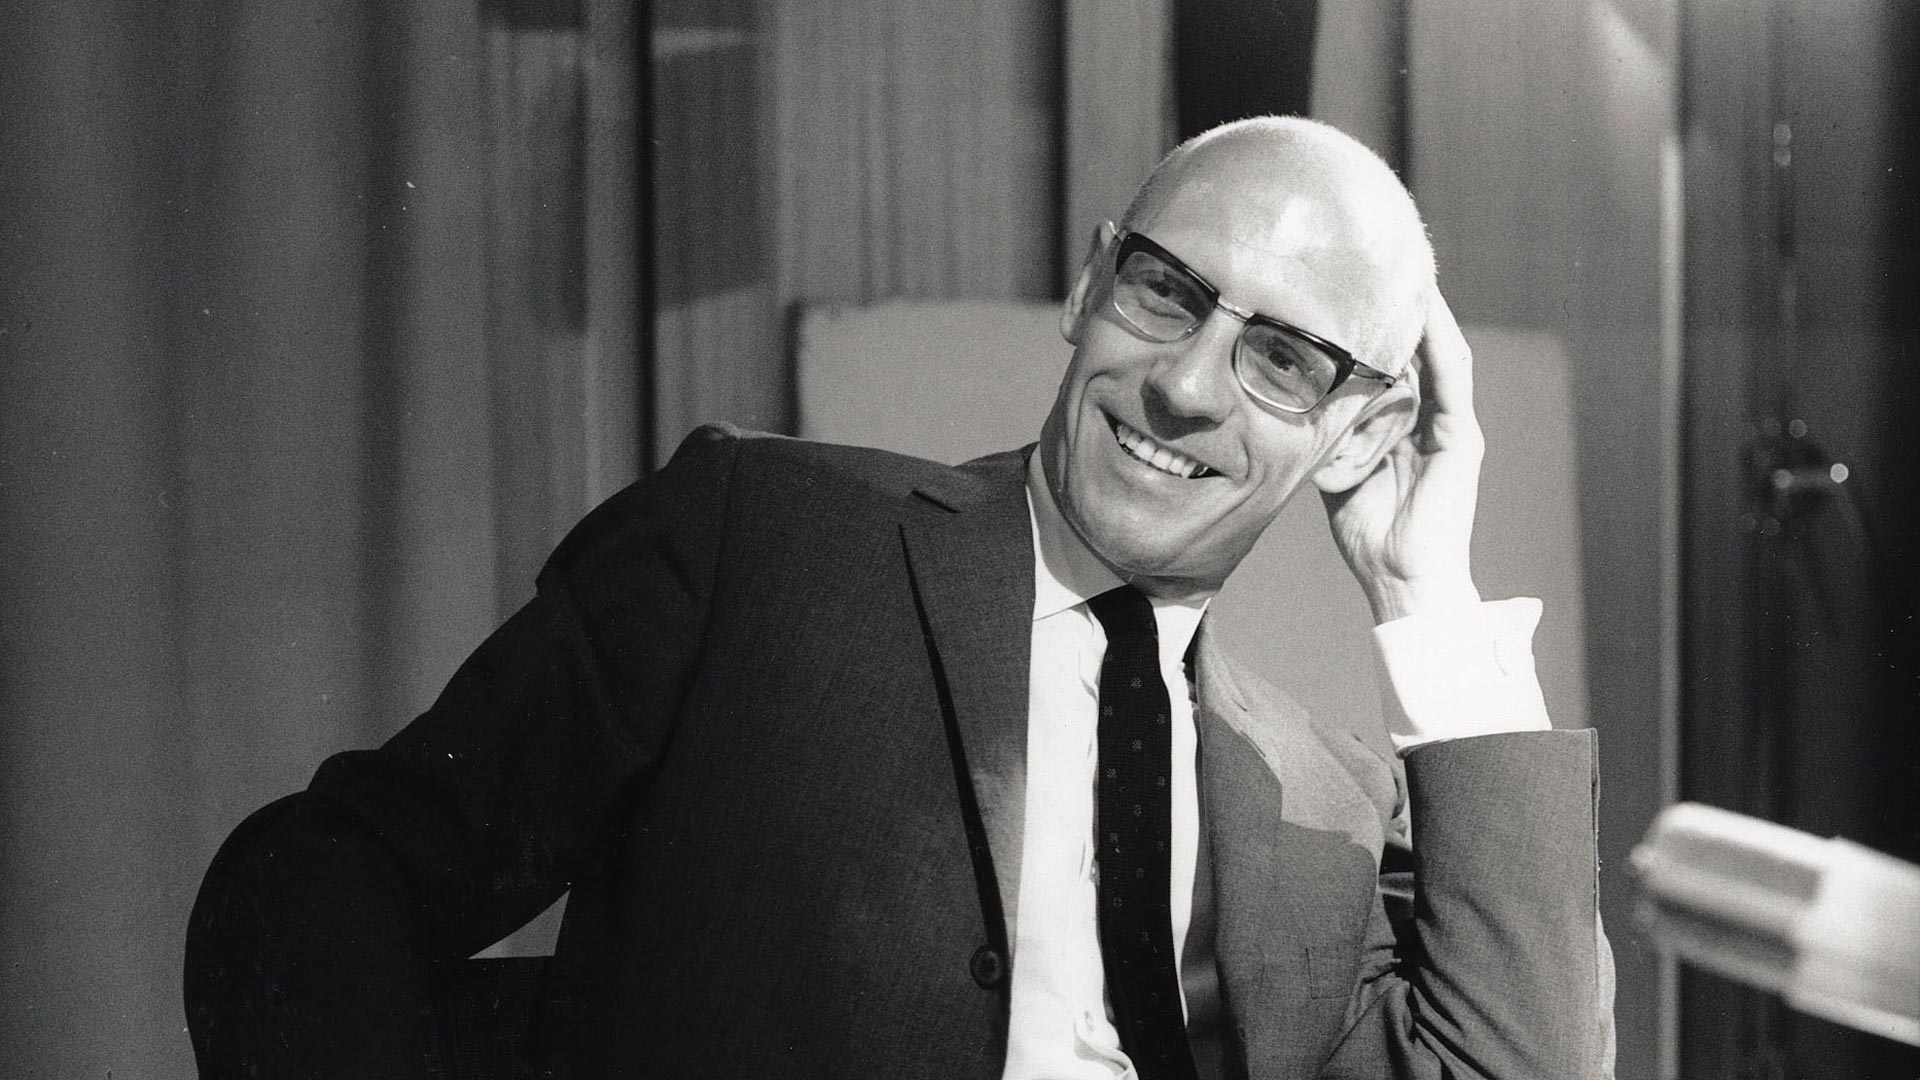 Michel Foucault These Are The Upsides Of Going Bald